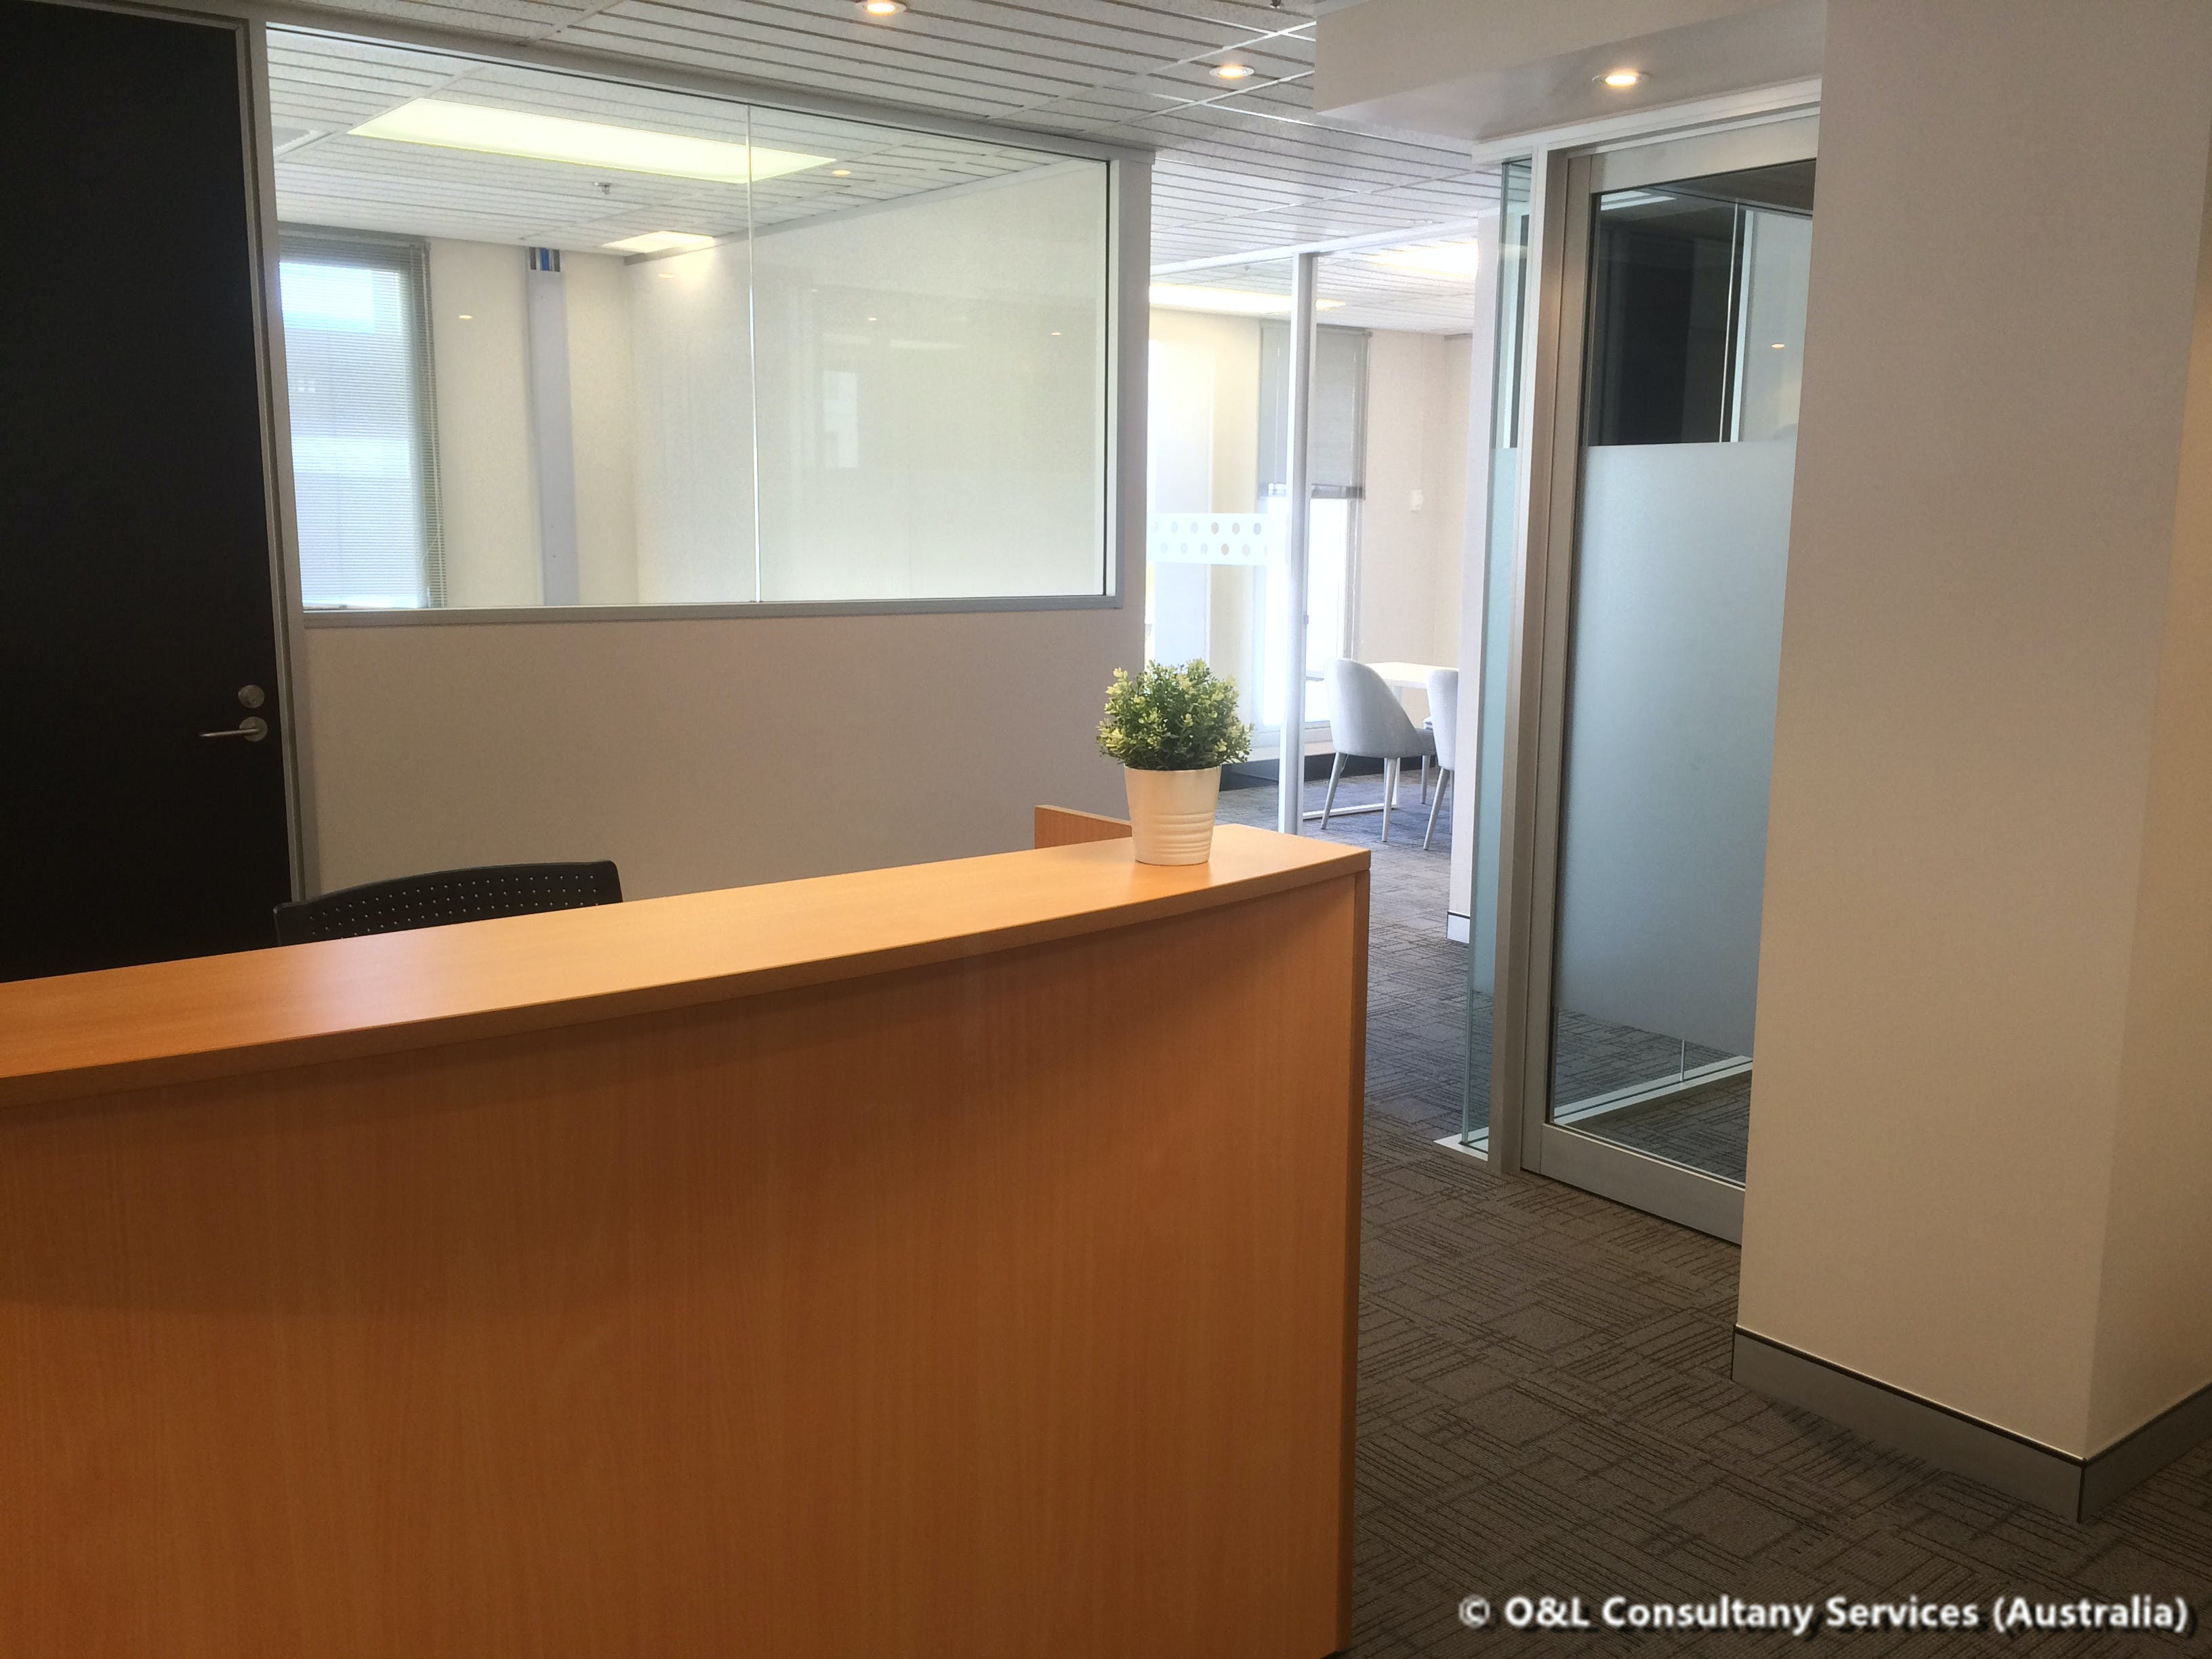 Main office room, serviced office at O & L Consultancy Services (Australia) Pty Ltd, image 4